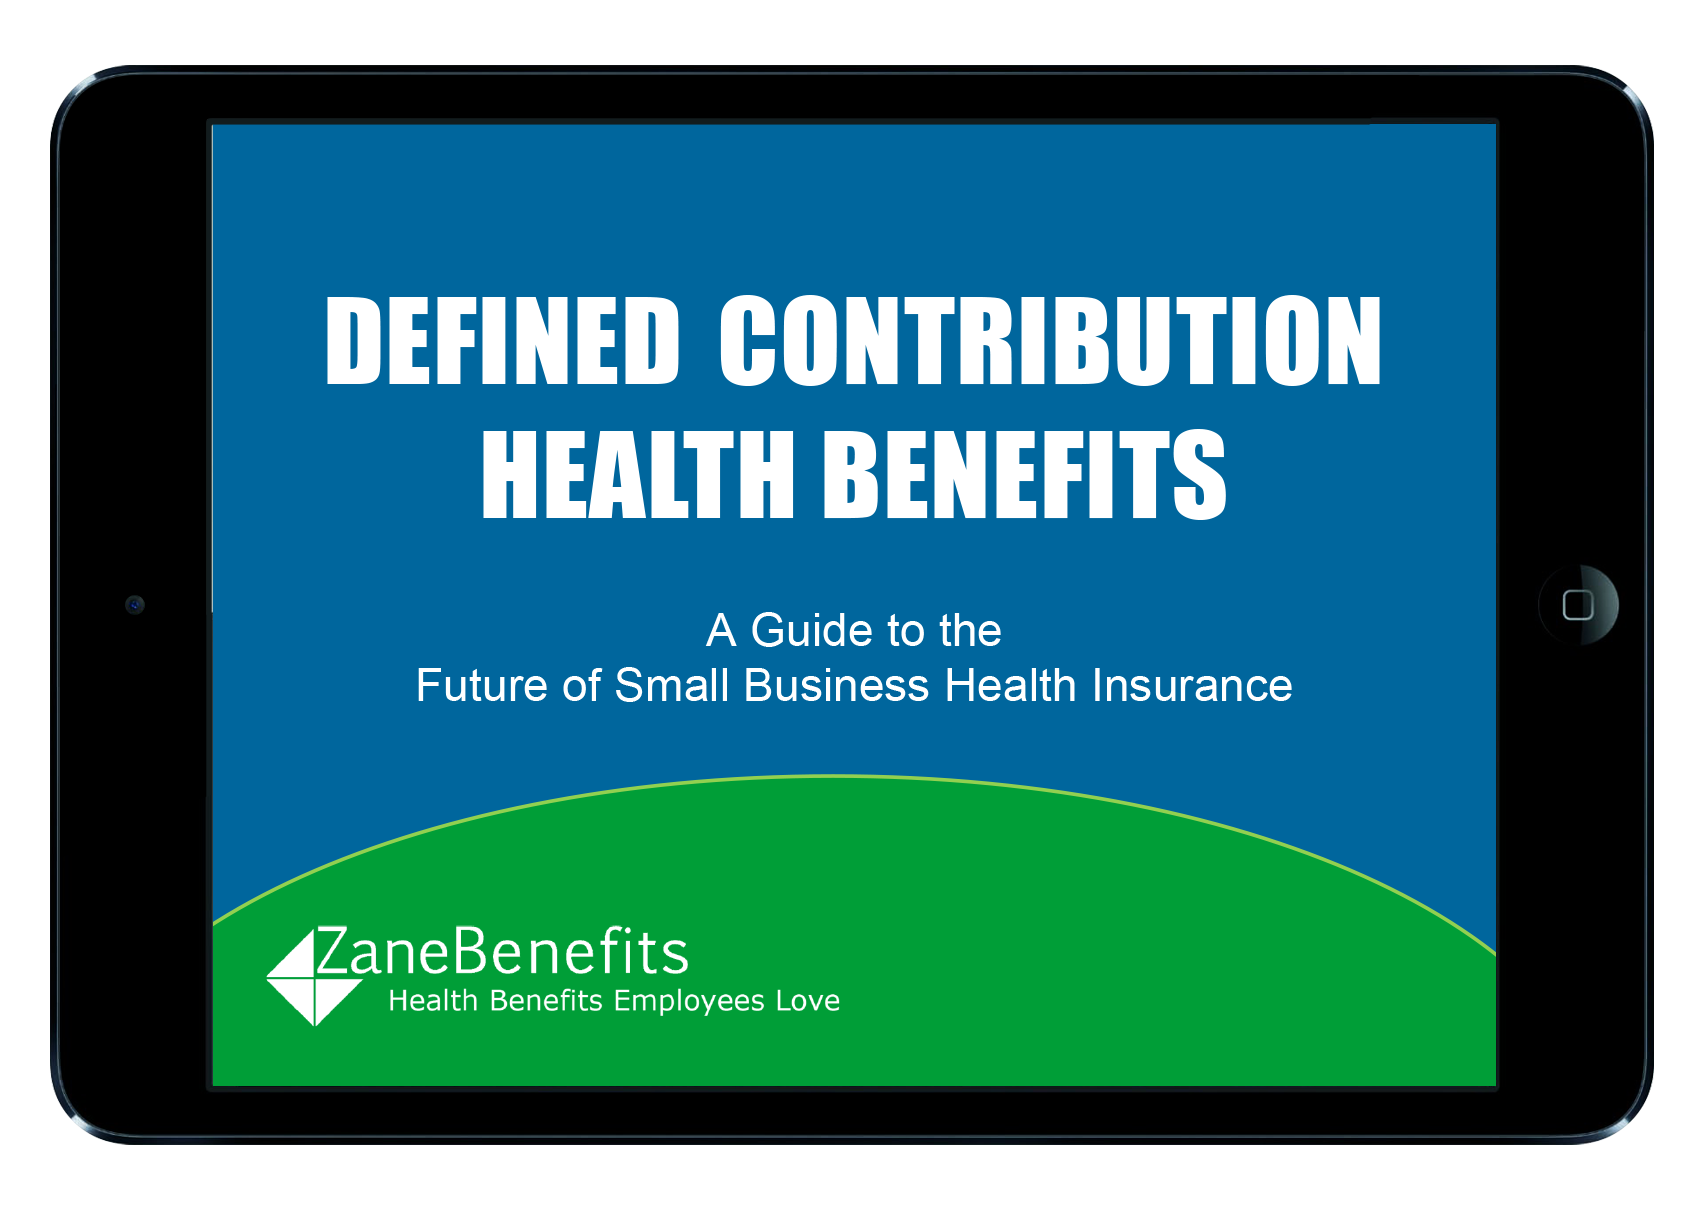 Defined_Contribution_Health_Benefits